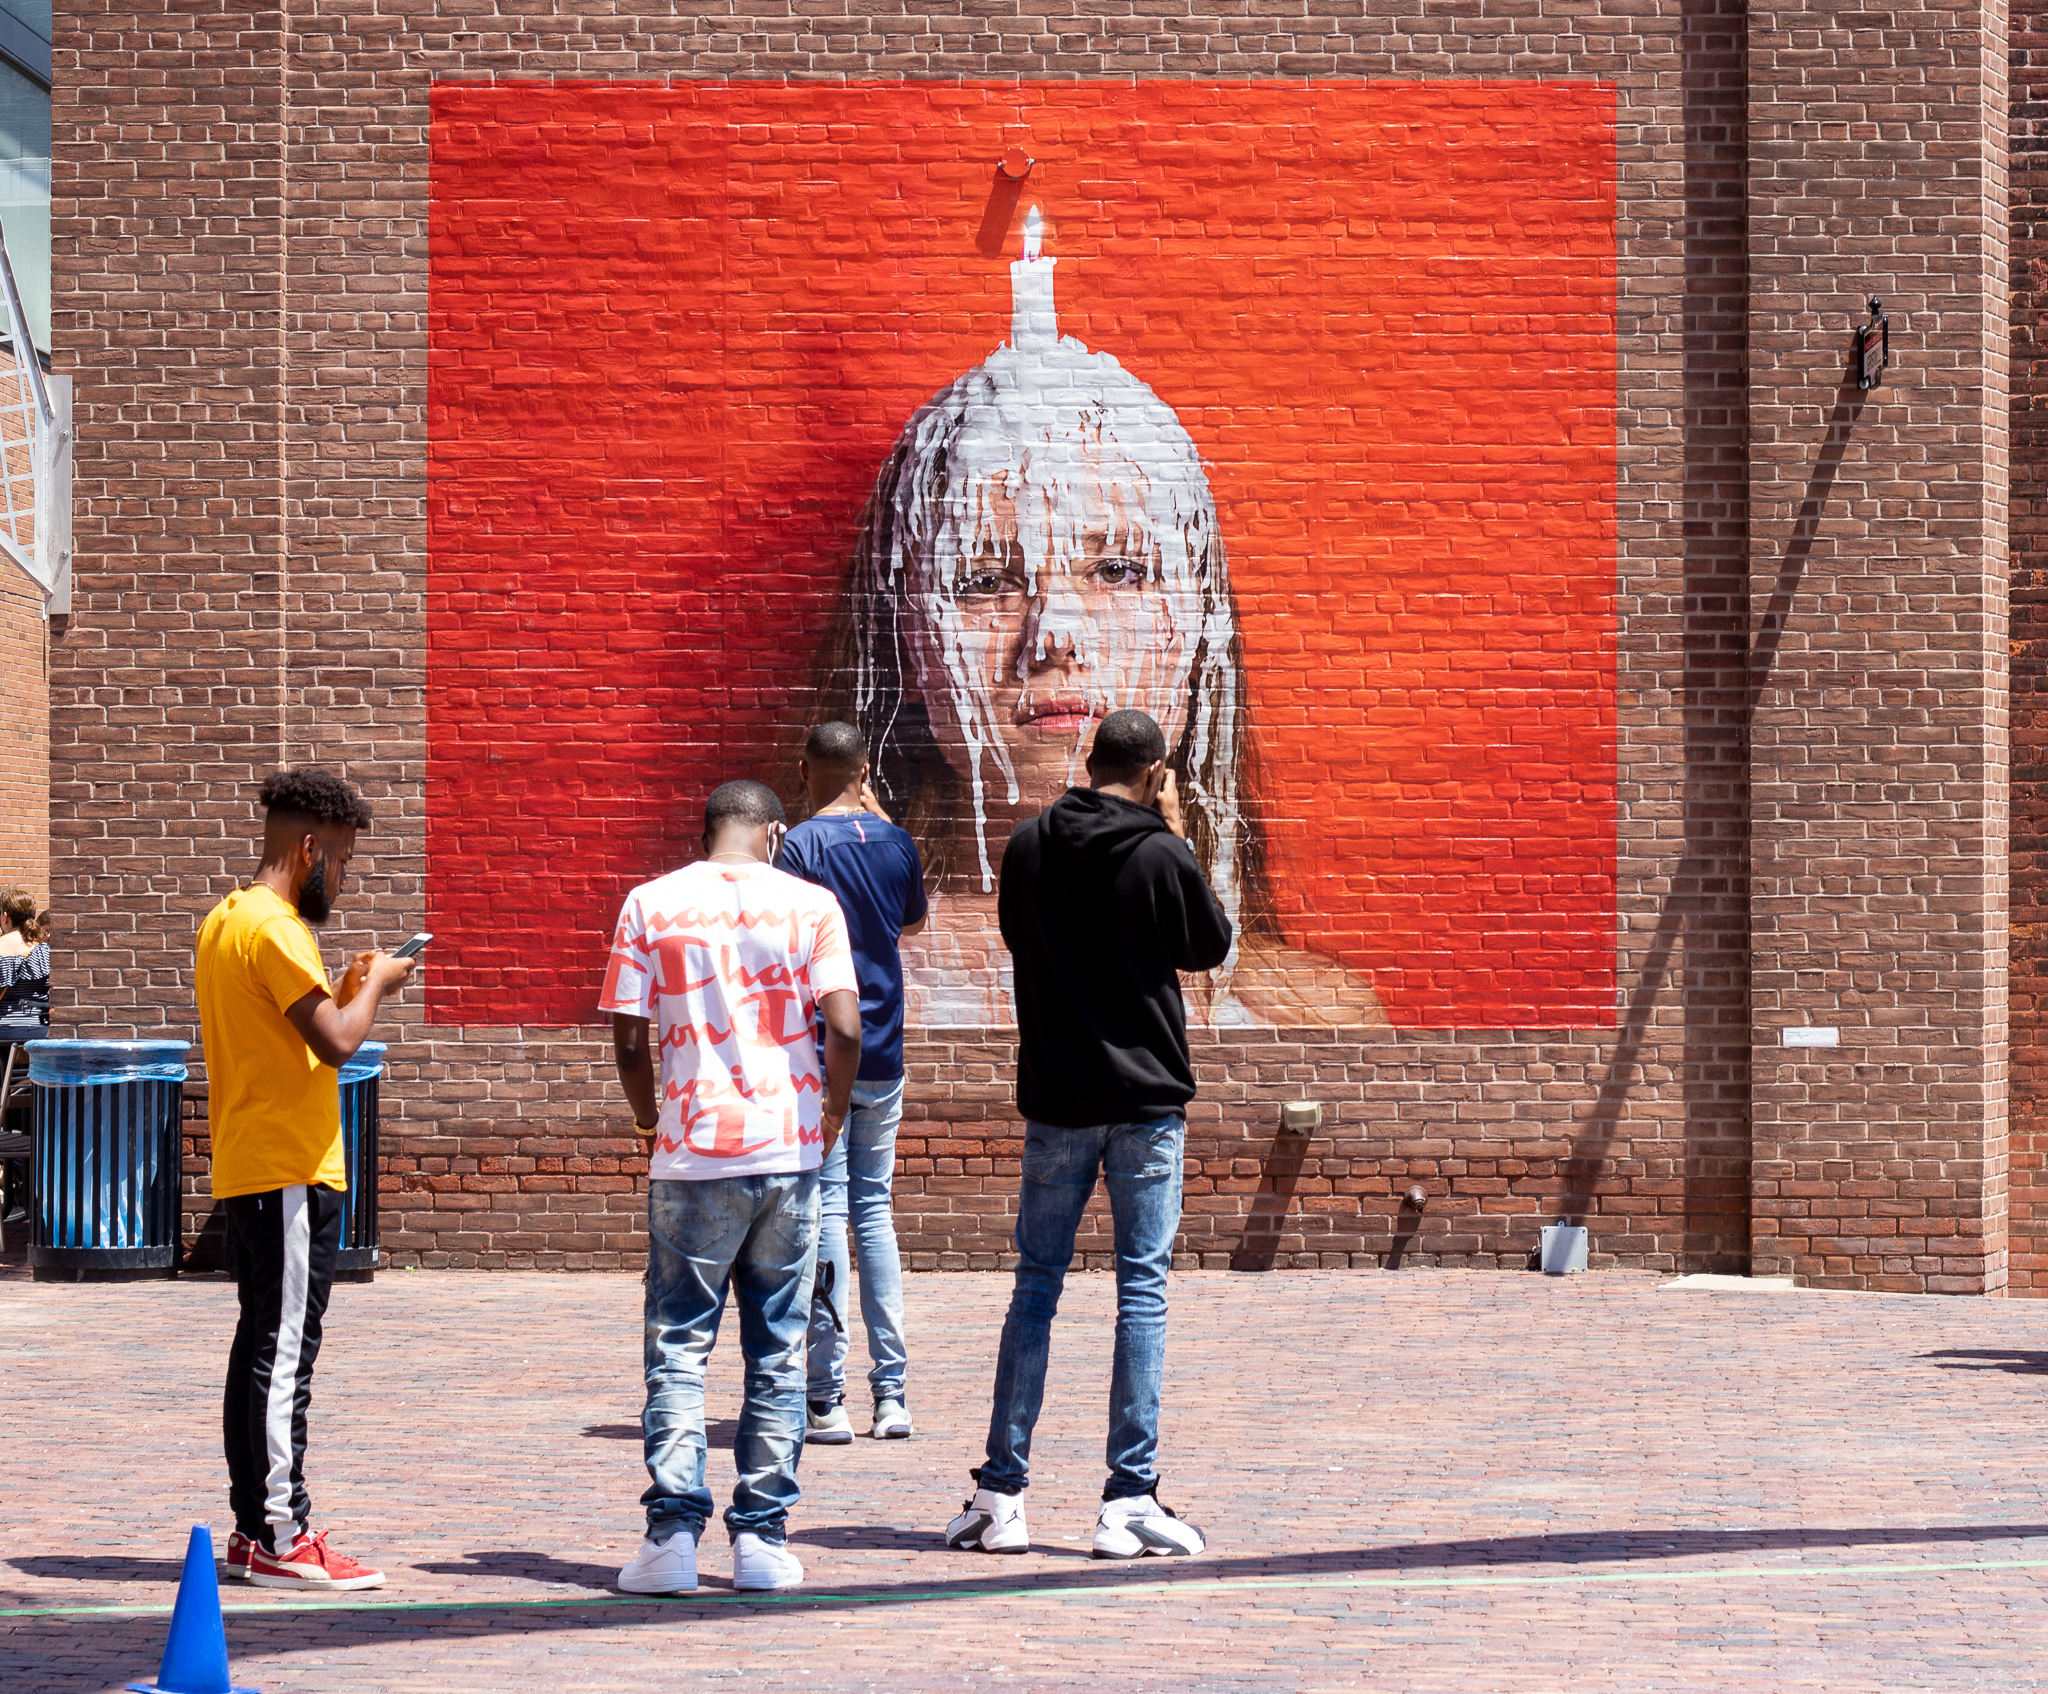 Street art is also available in the Distillery District.